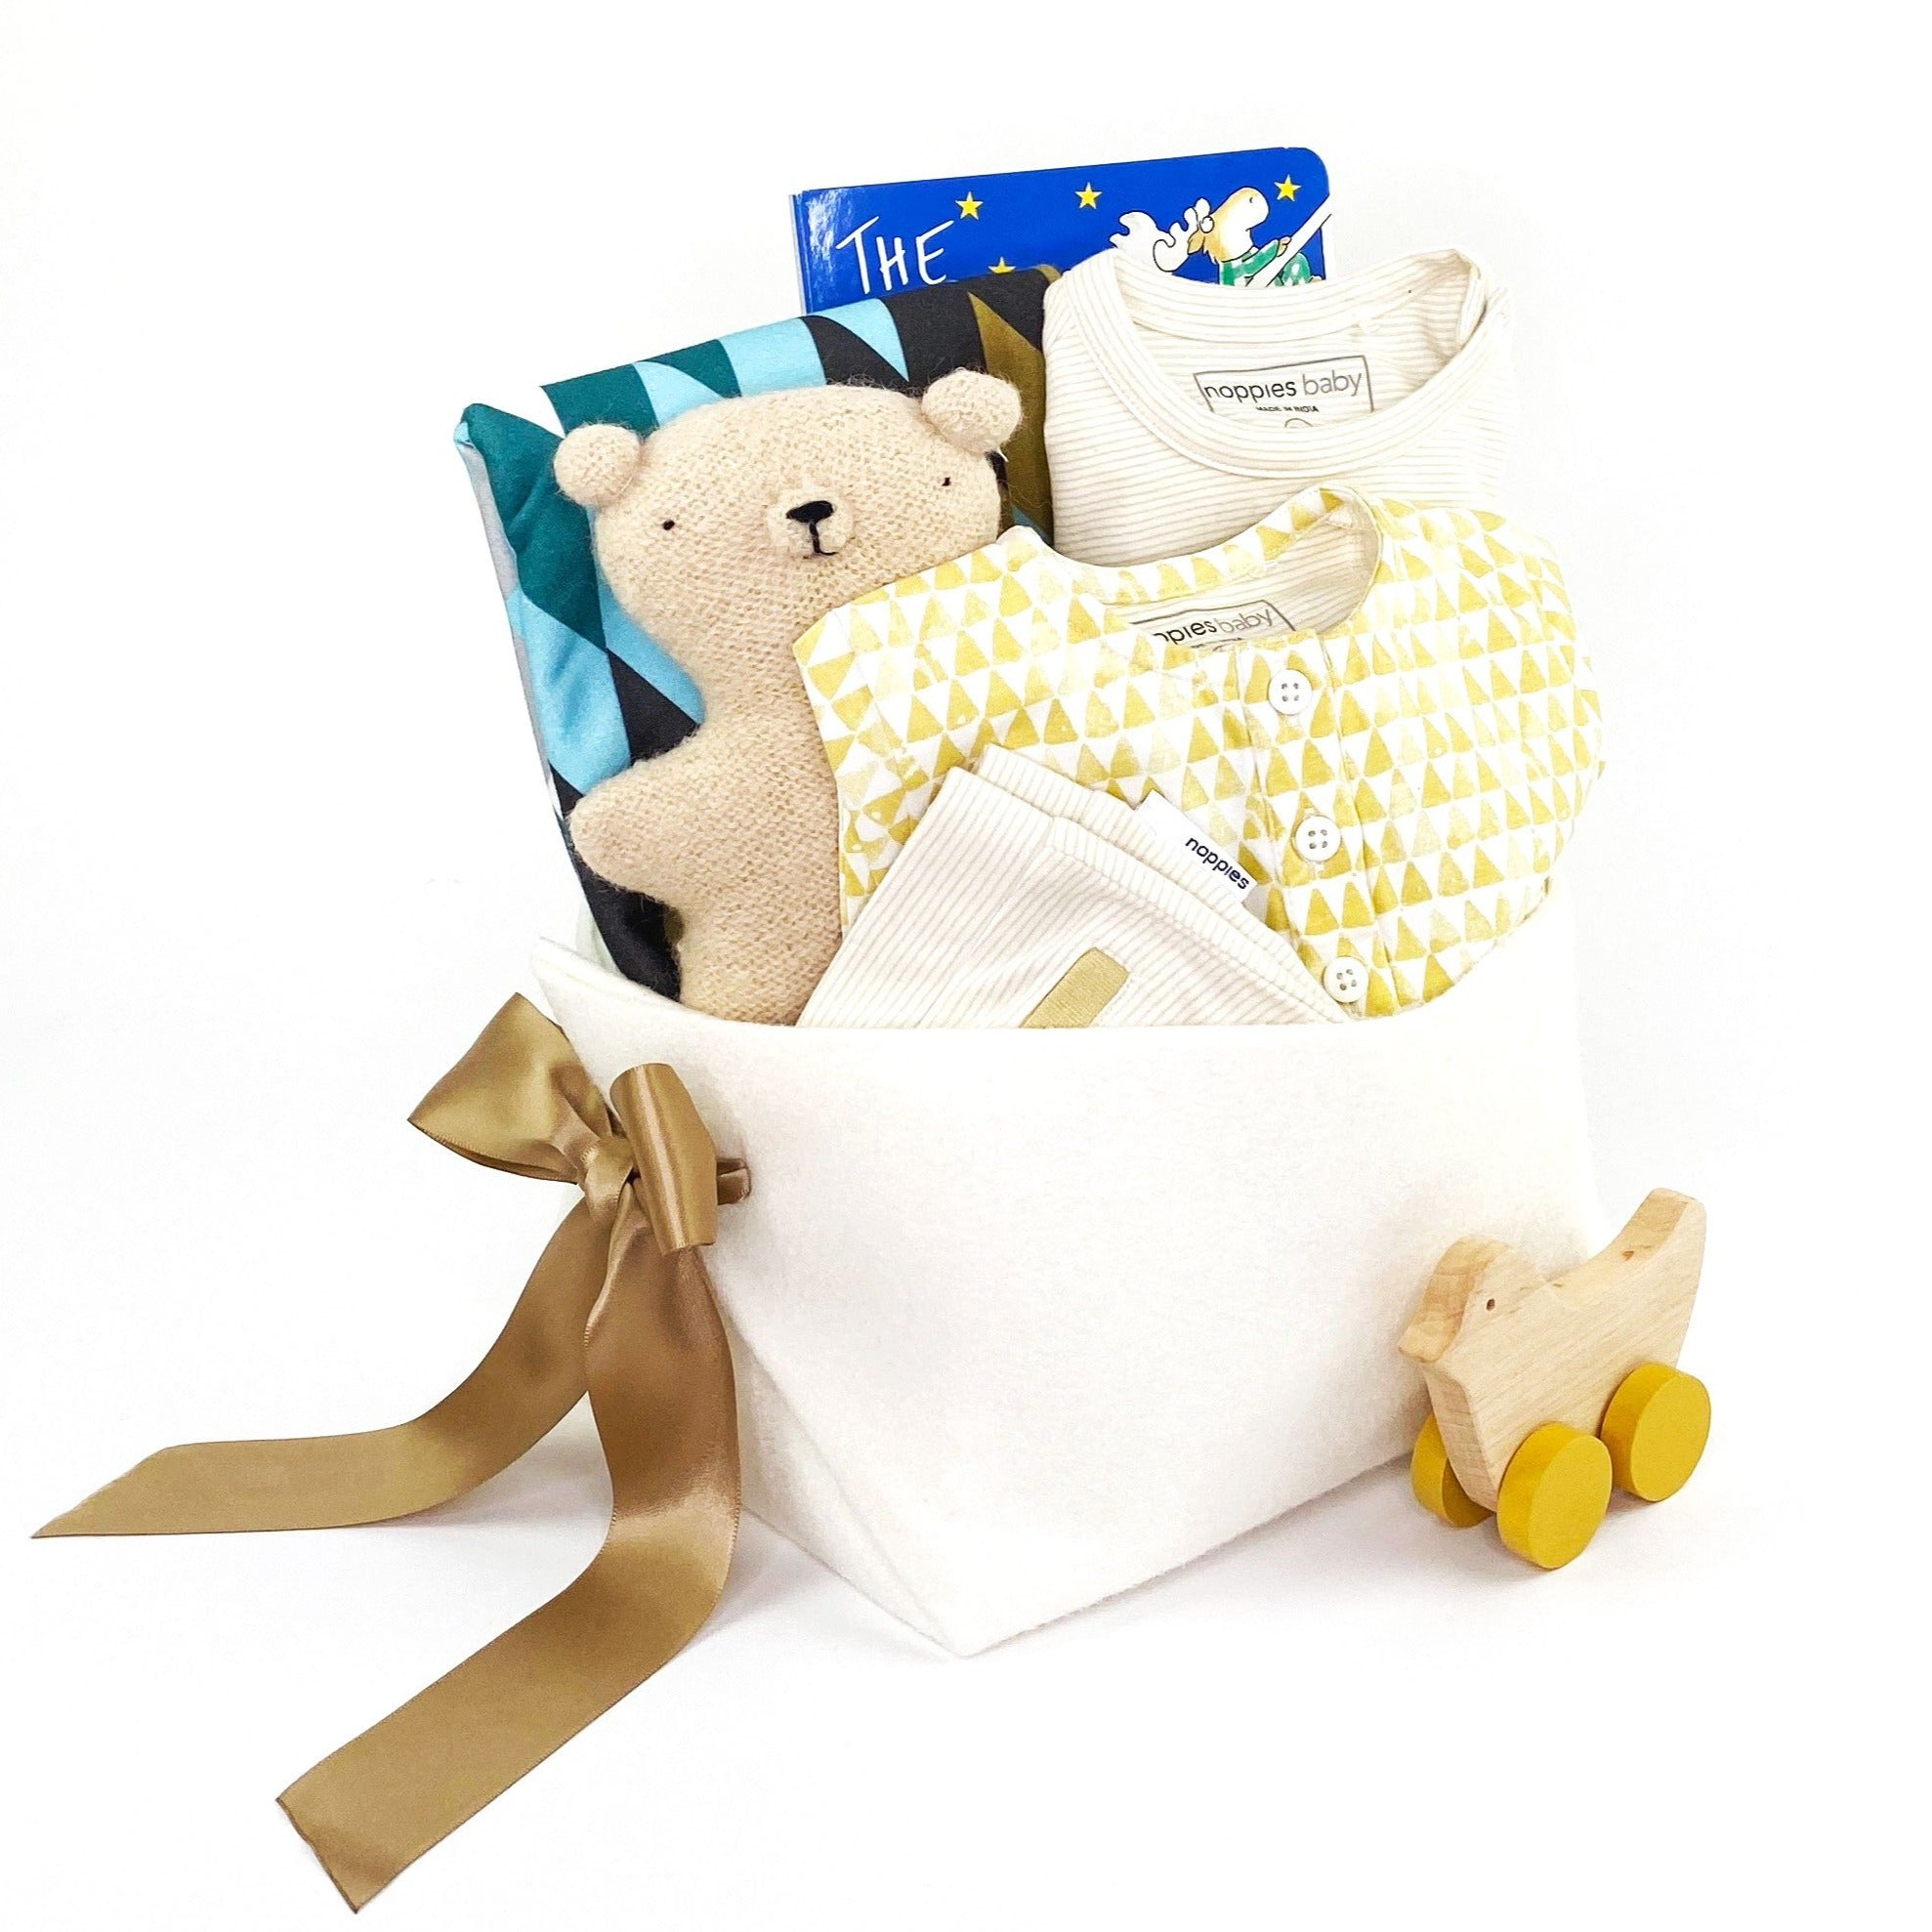 Luxury Baby Gift Basket in neutral at Bonjour Baby Baskets